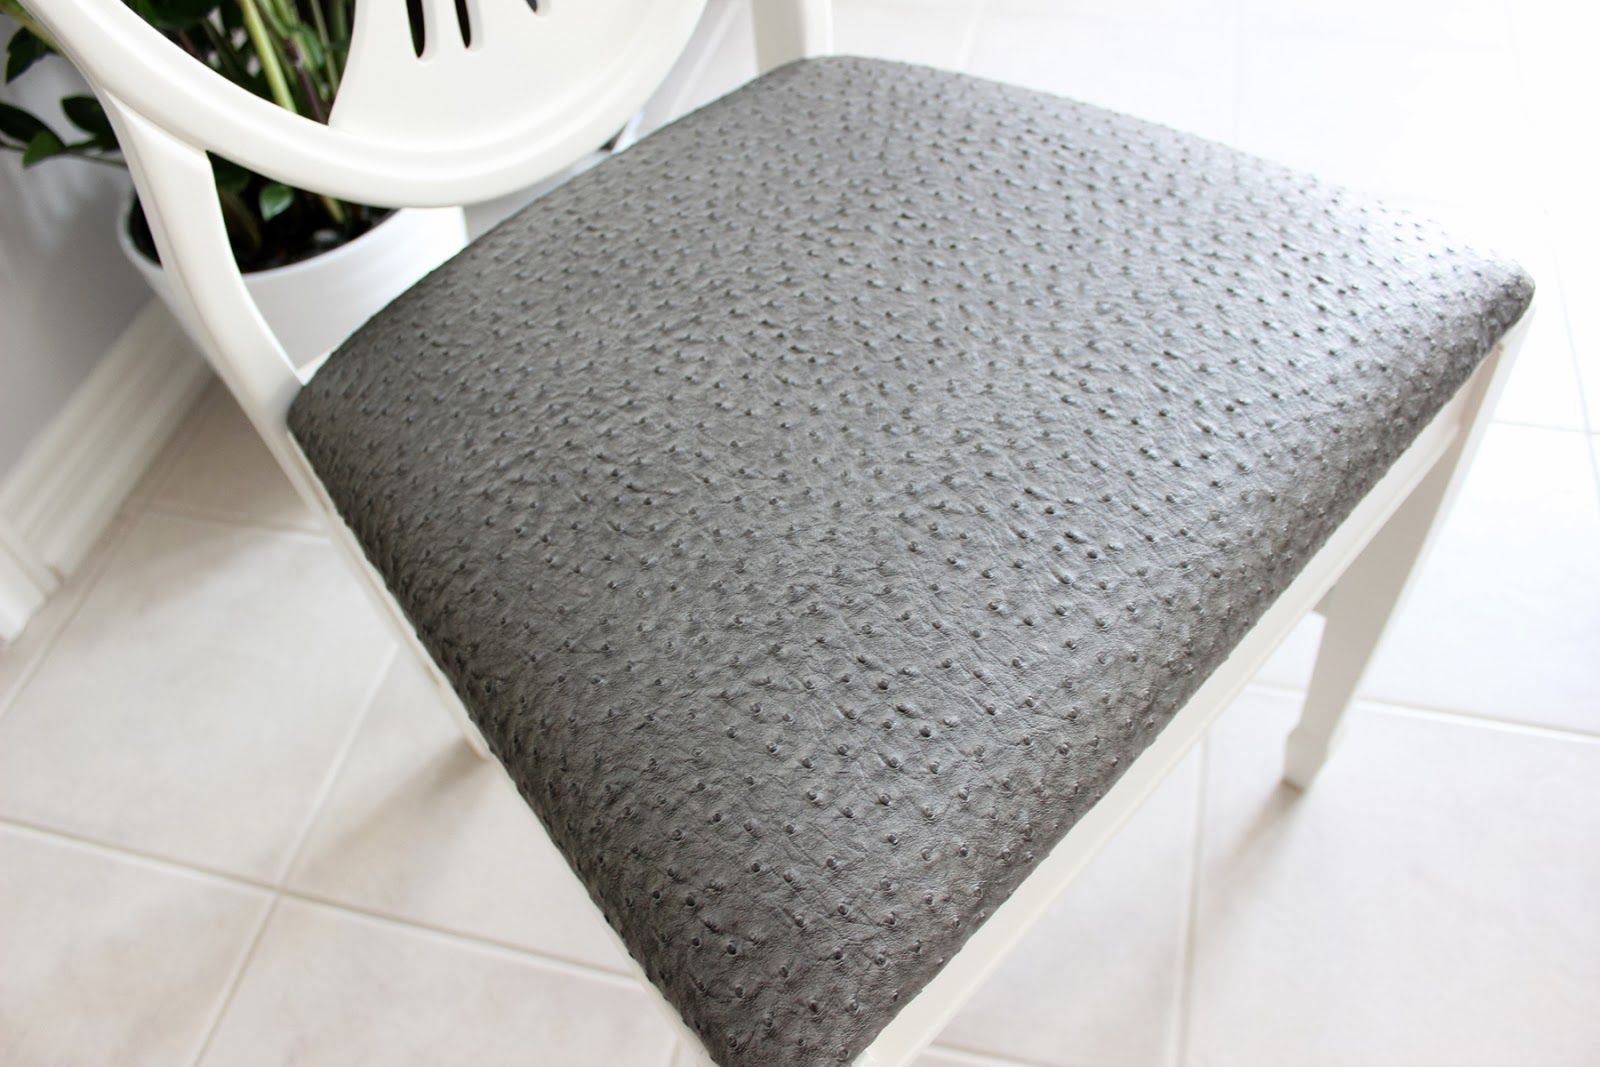 AM Dolce Vita: Antique Shield Back Chair Transformation, Faux Ostrich  Upholstery Fabric, Faux Ostrich Vinyl